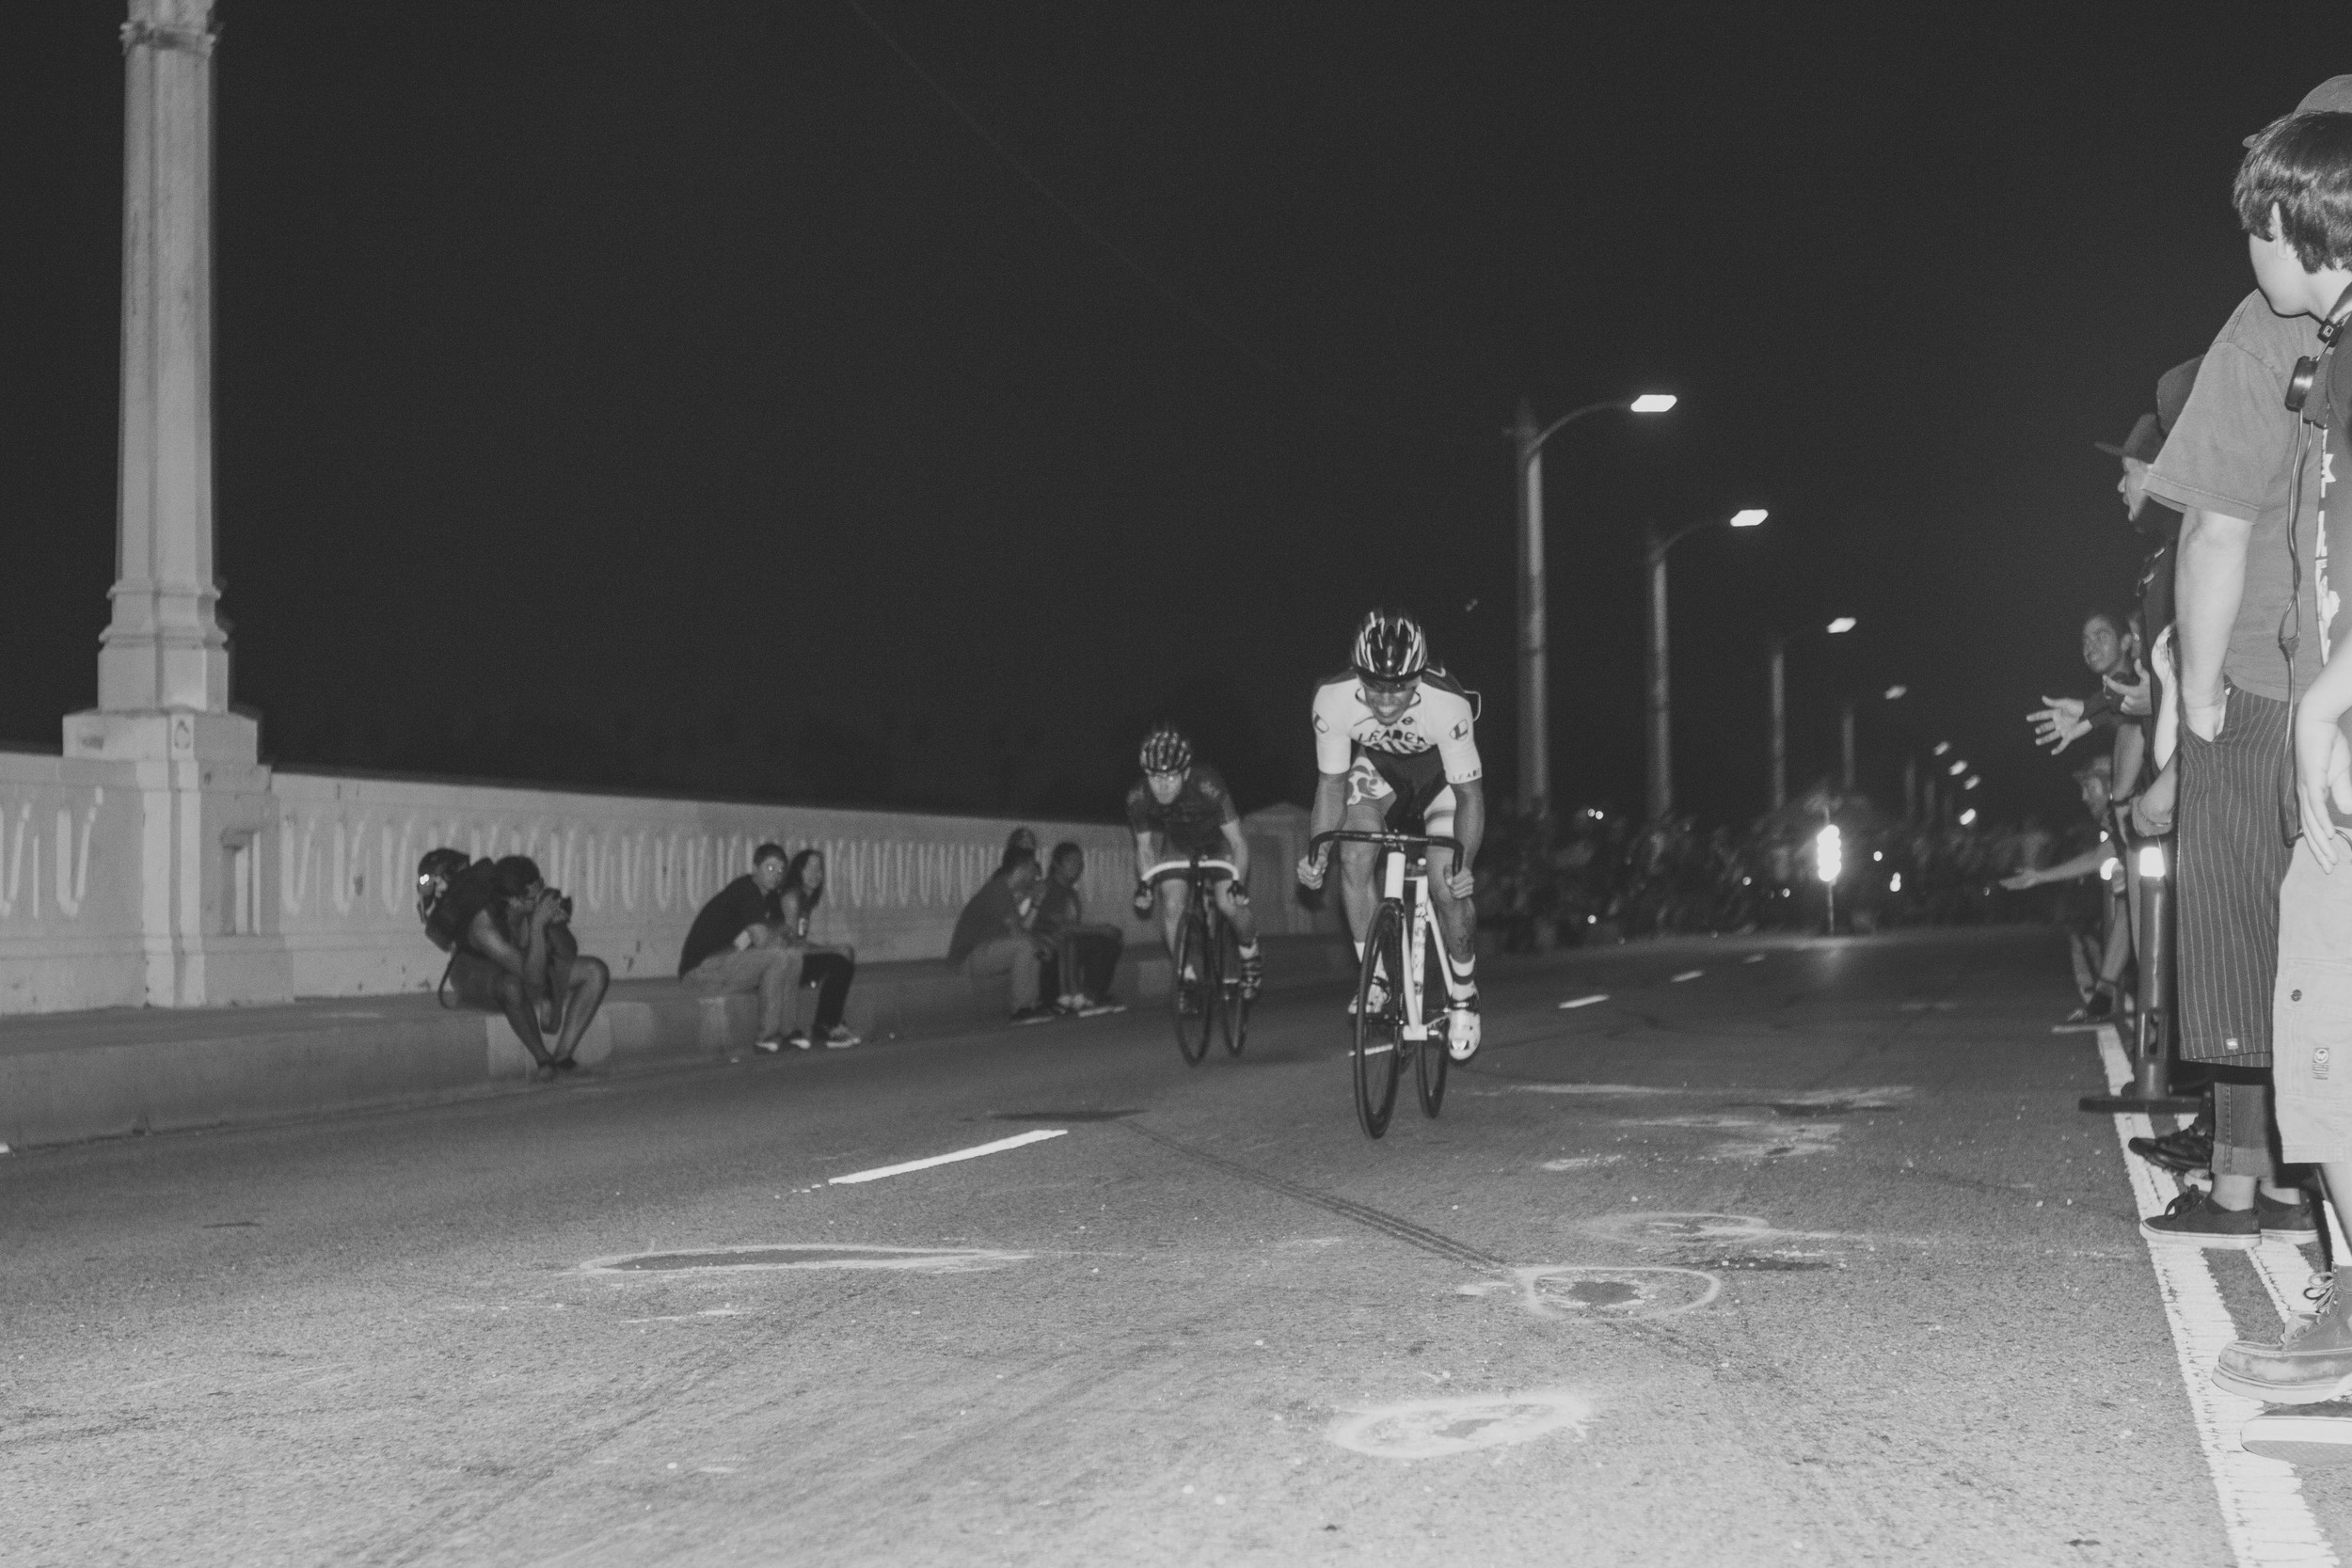 5. Wolfpack Hustle drag races on the 6th St bridge in downtown Los Angeles.